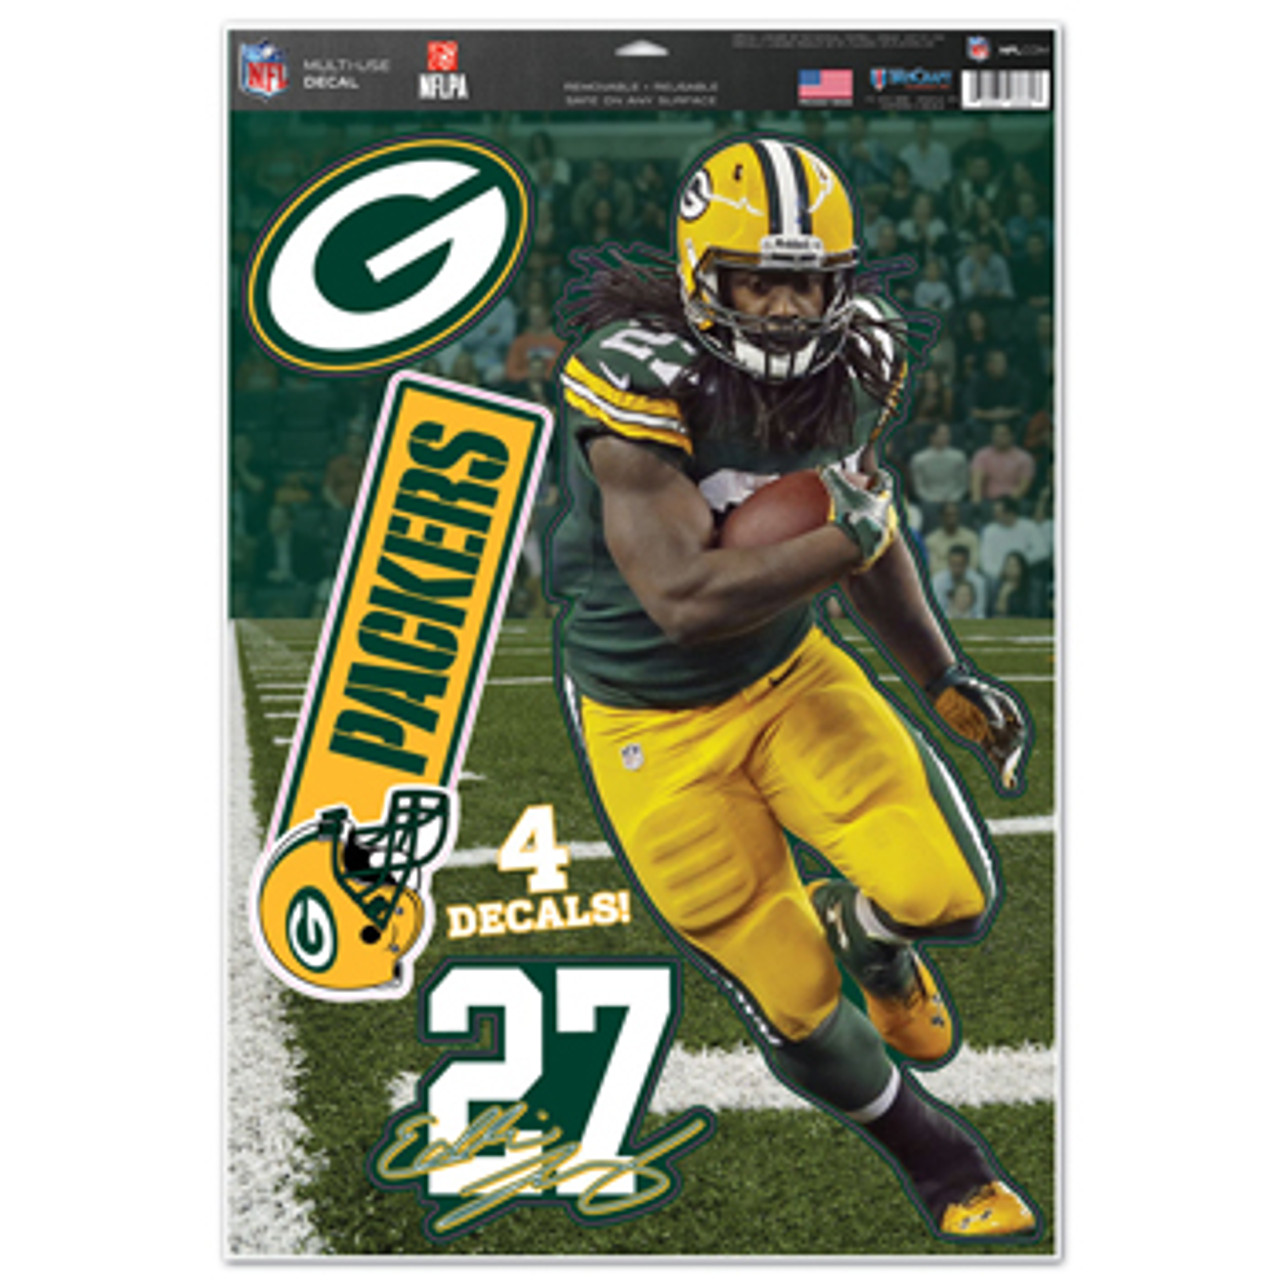 Green Bay Packers Eddie Lacy Decal 11x17 Multi Use